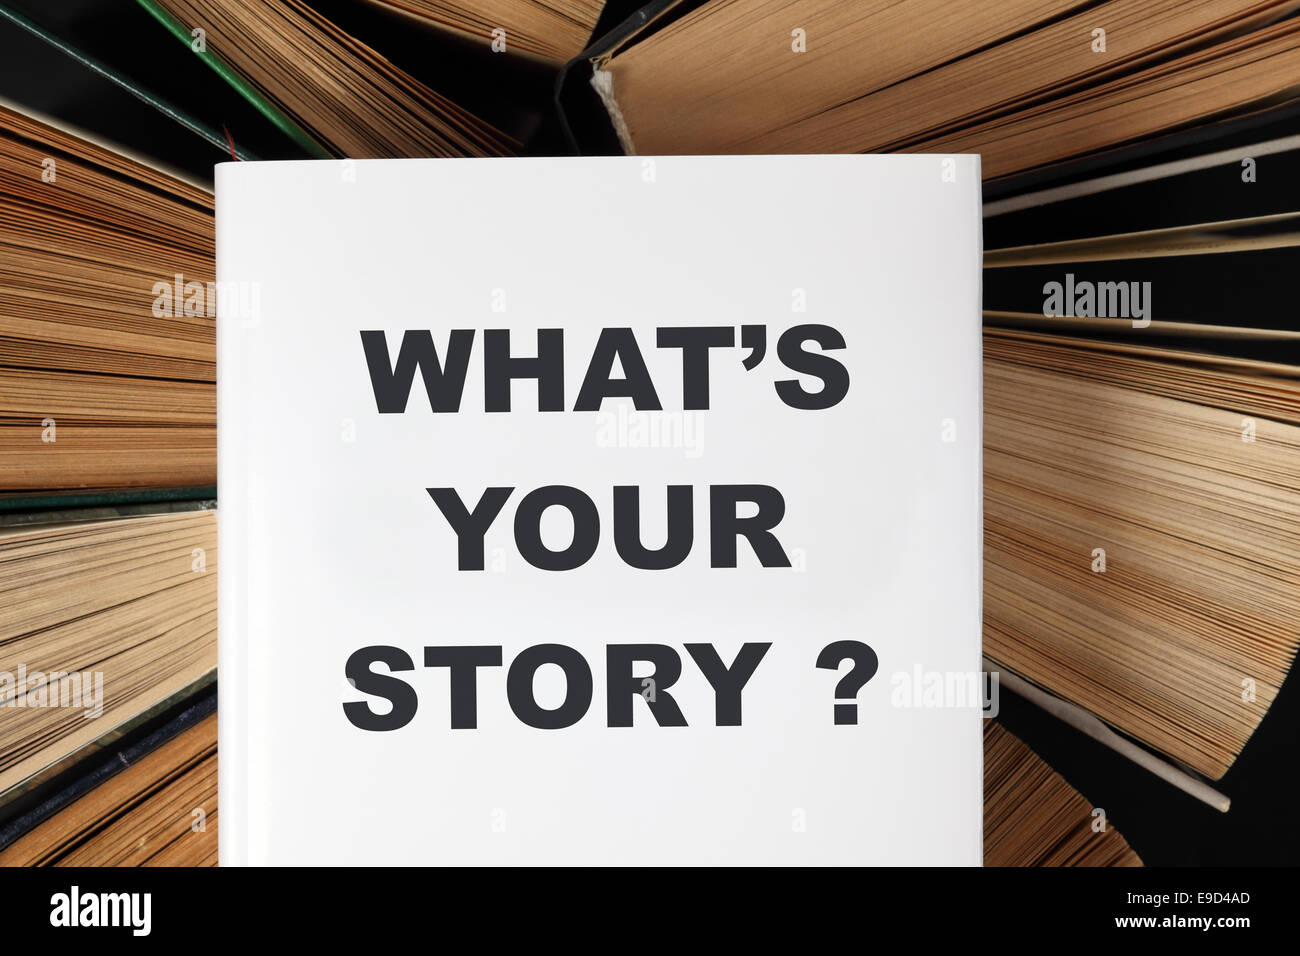 Top view of old hardback books with book 'What's your story?' - Stock Image